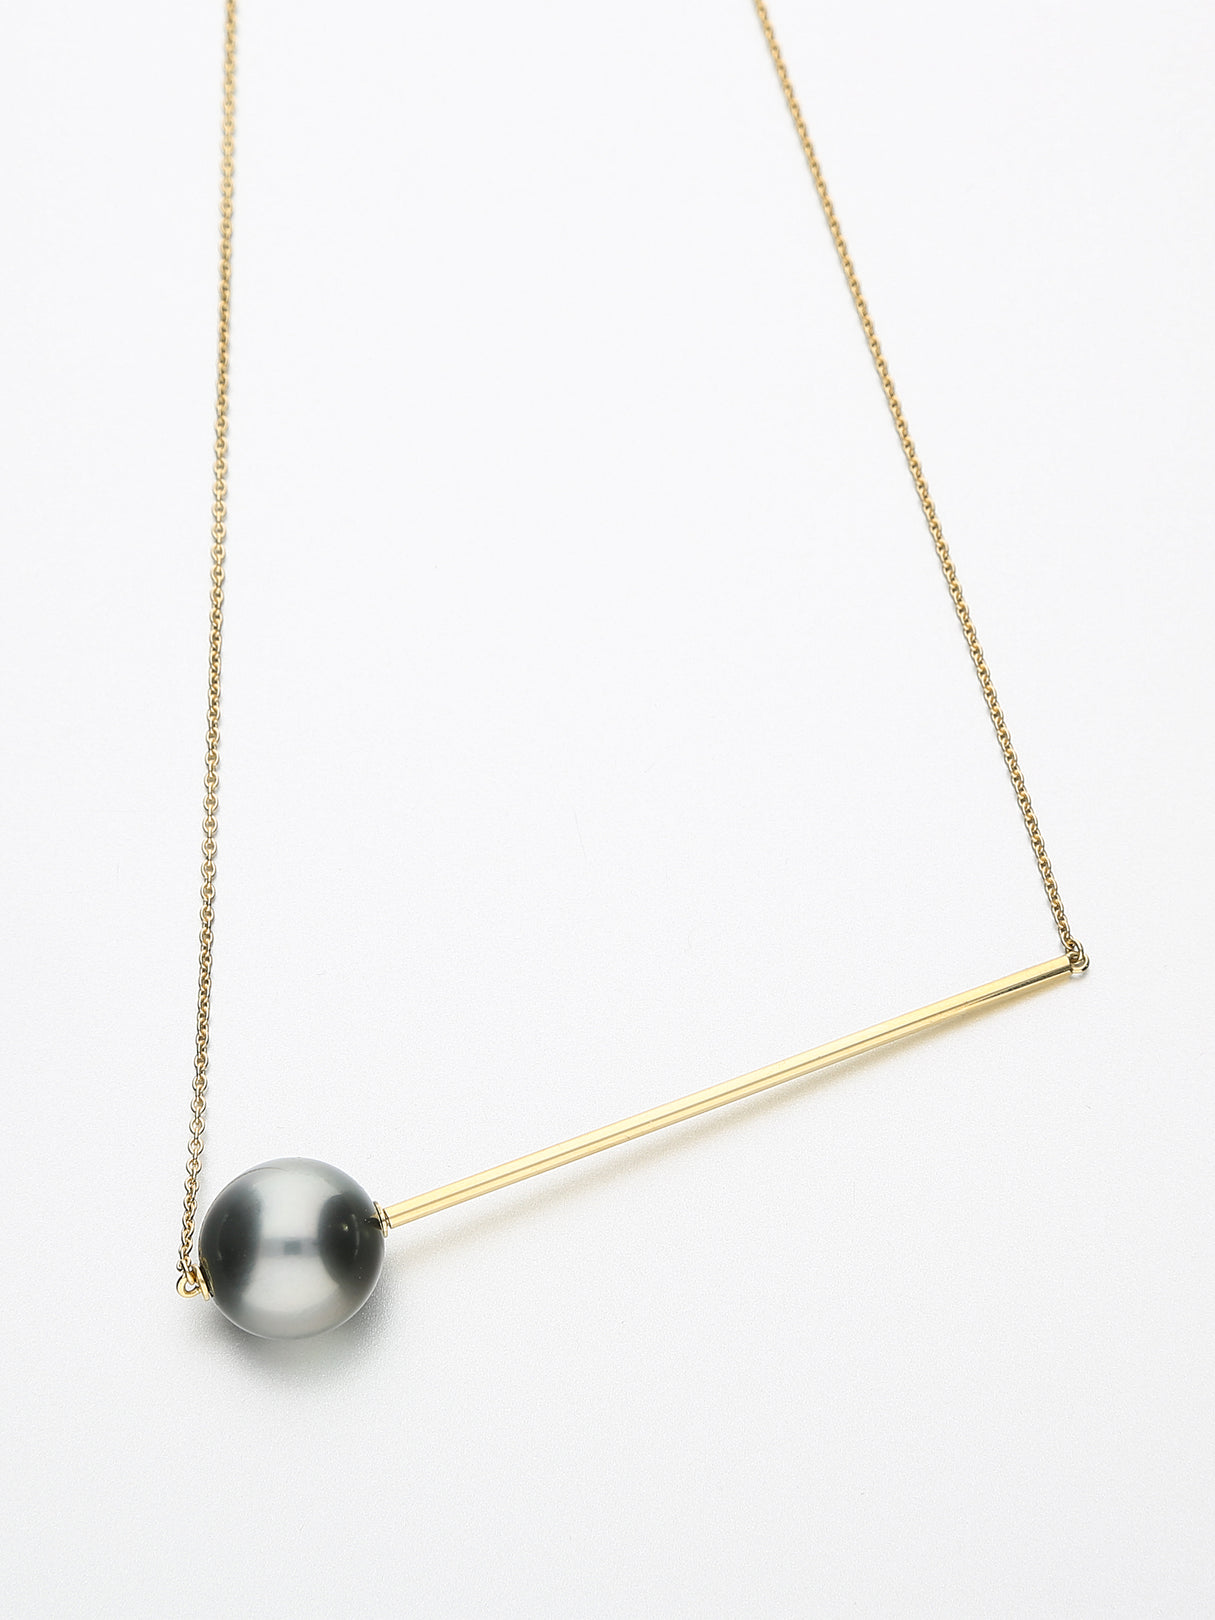 Abacus Pearl Necklace, Yellow gold with dark Tahitian pearl 13mm